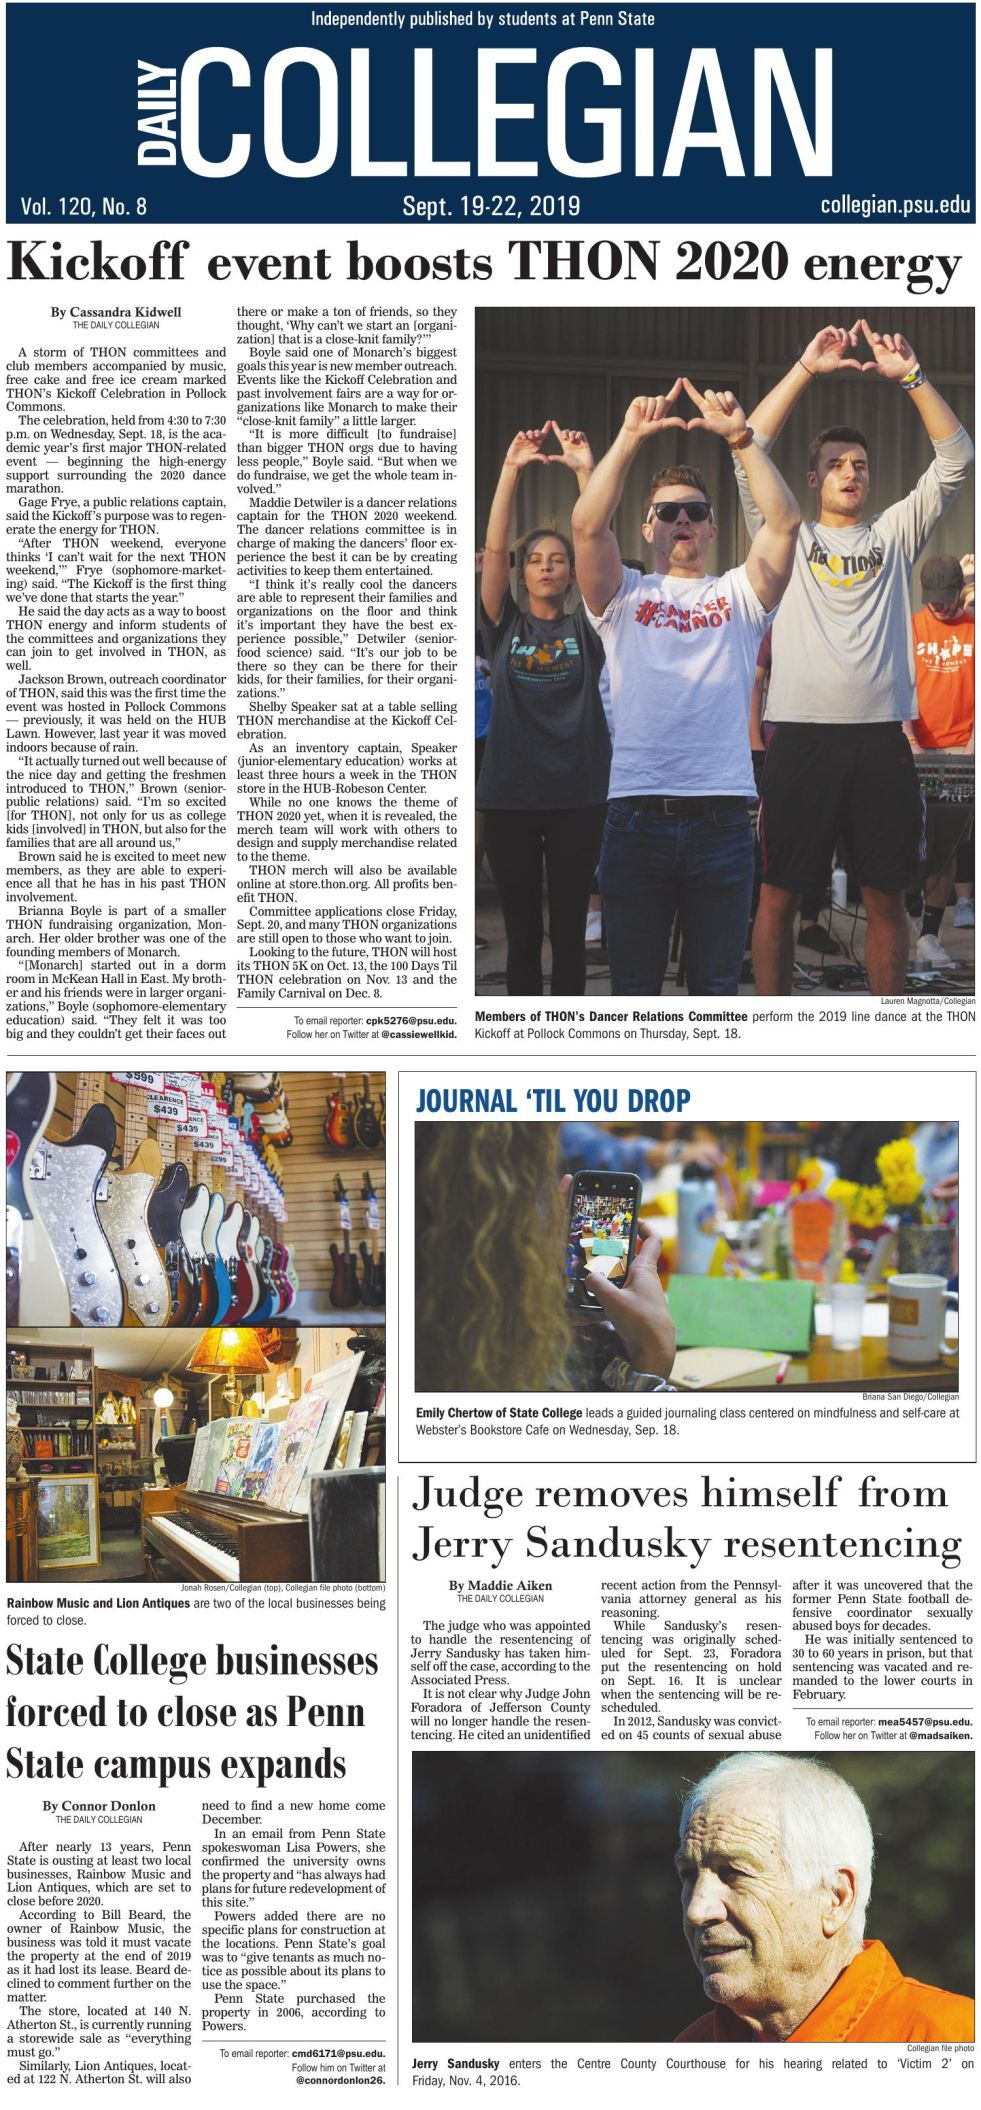 The Daily Collegian for Sept. 19, 2019